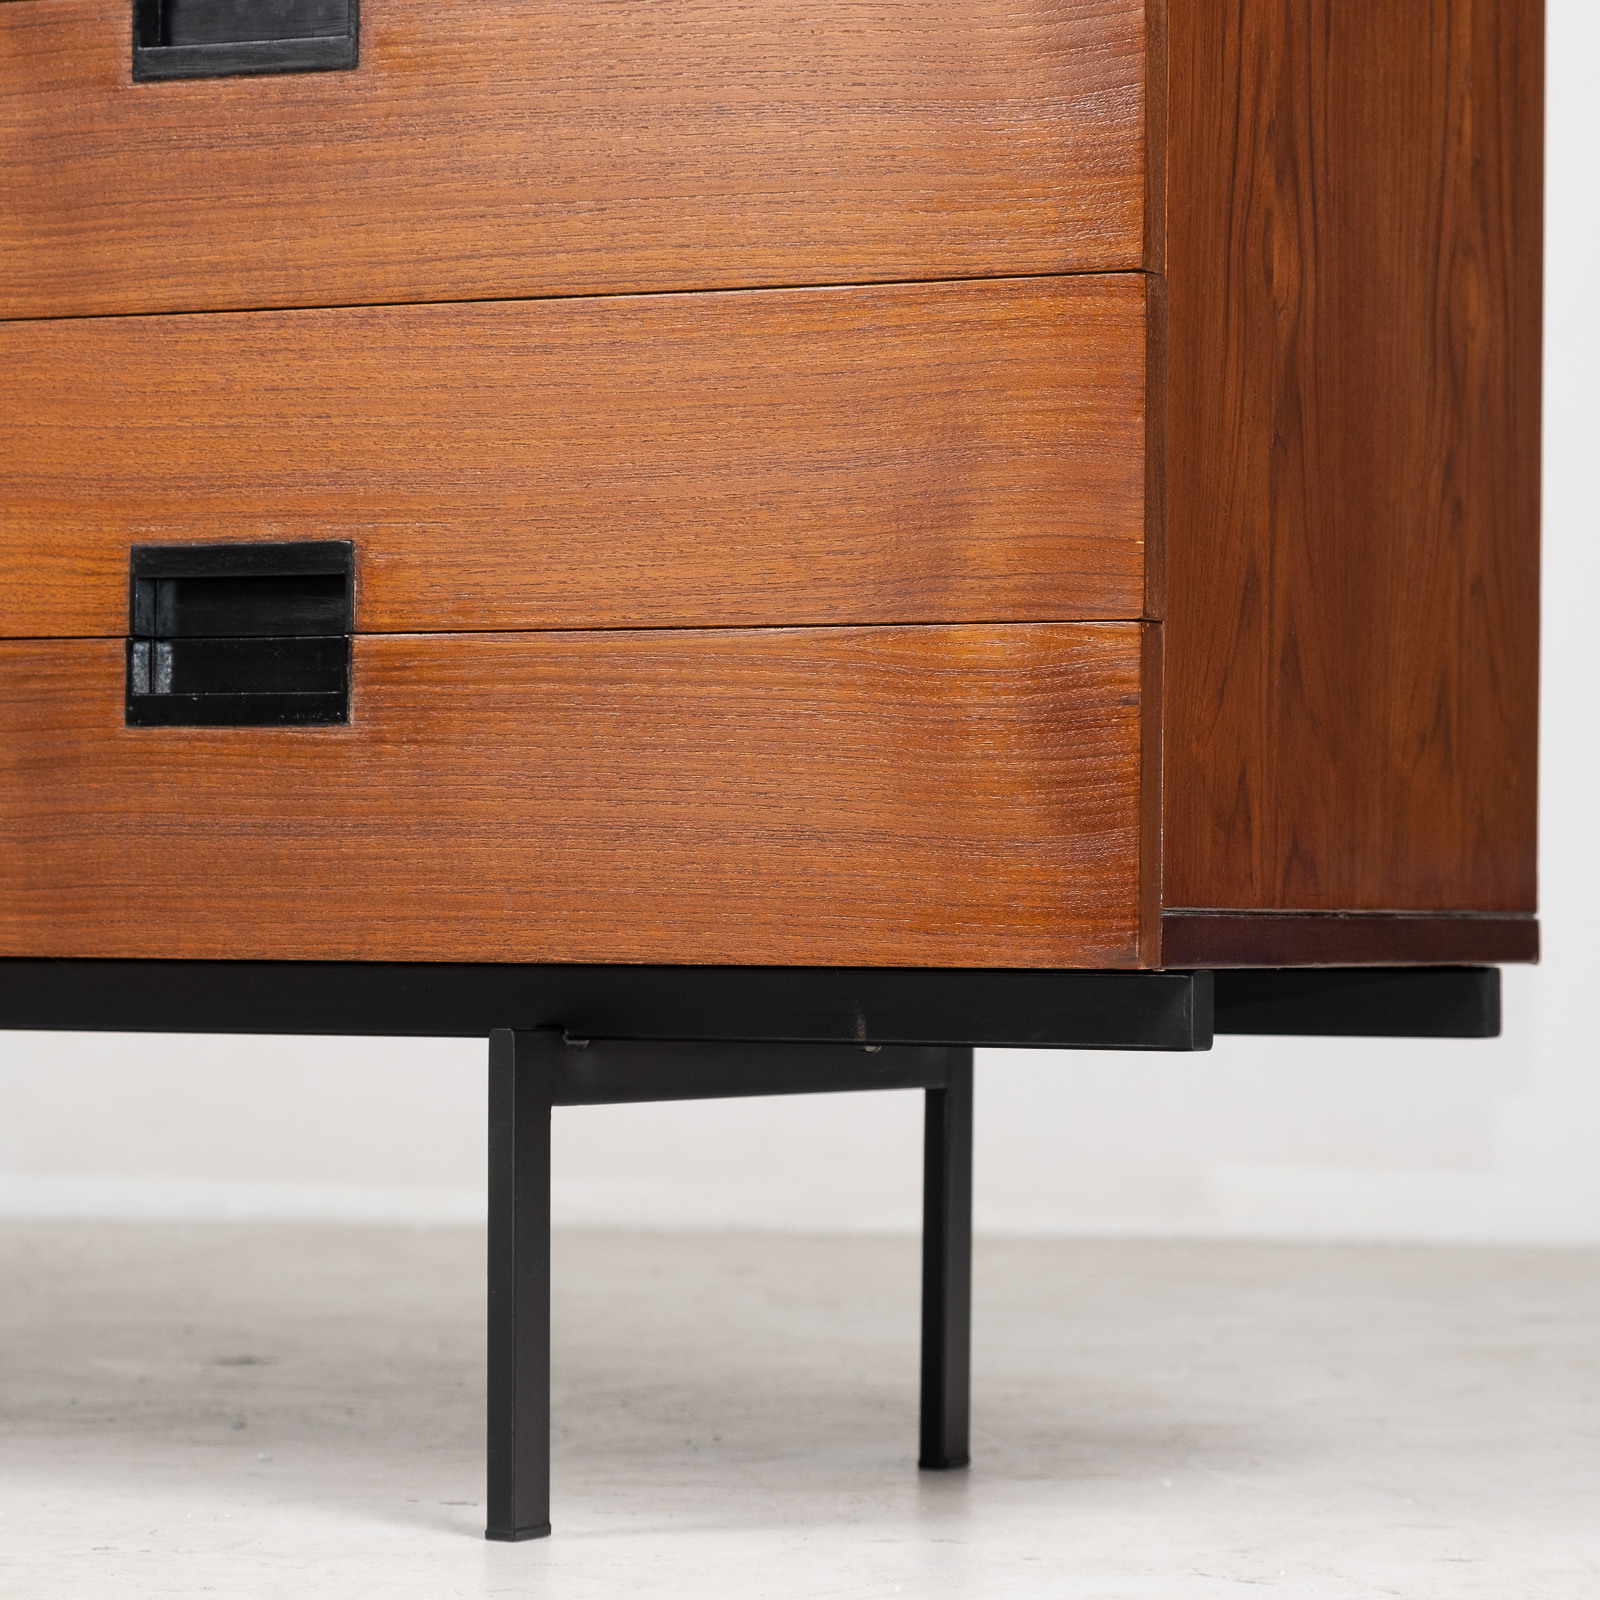 Du04 Japanese Series Sideboard By Cees Braakman For Pastoe, 1950s, The Netherlands7